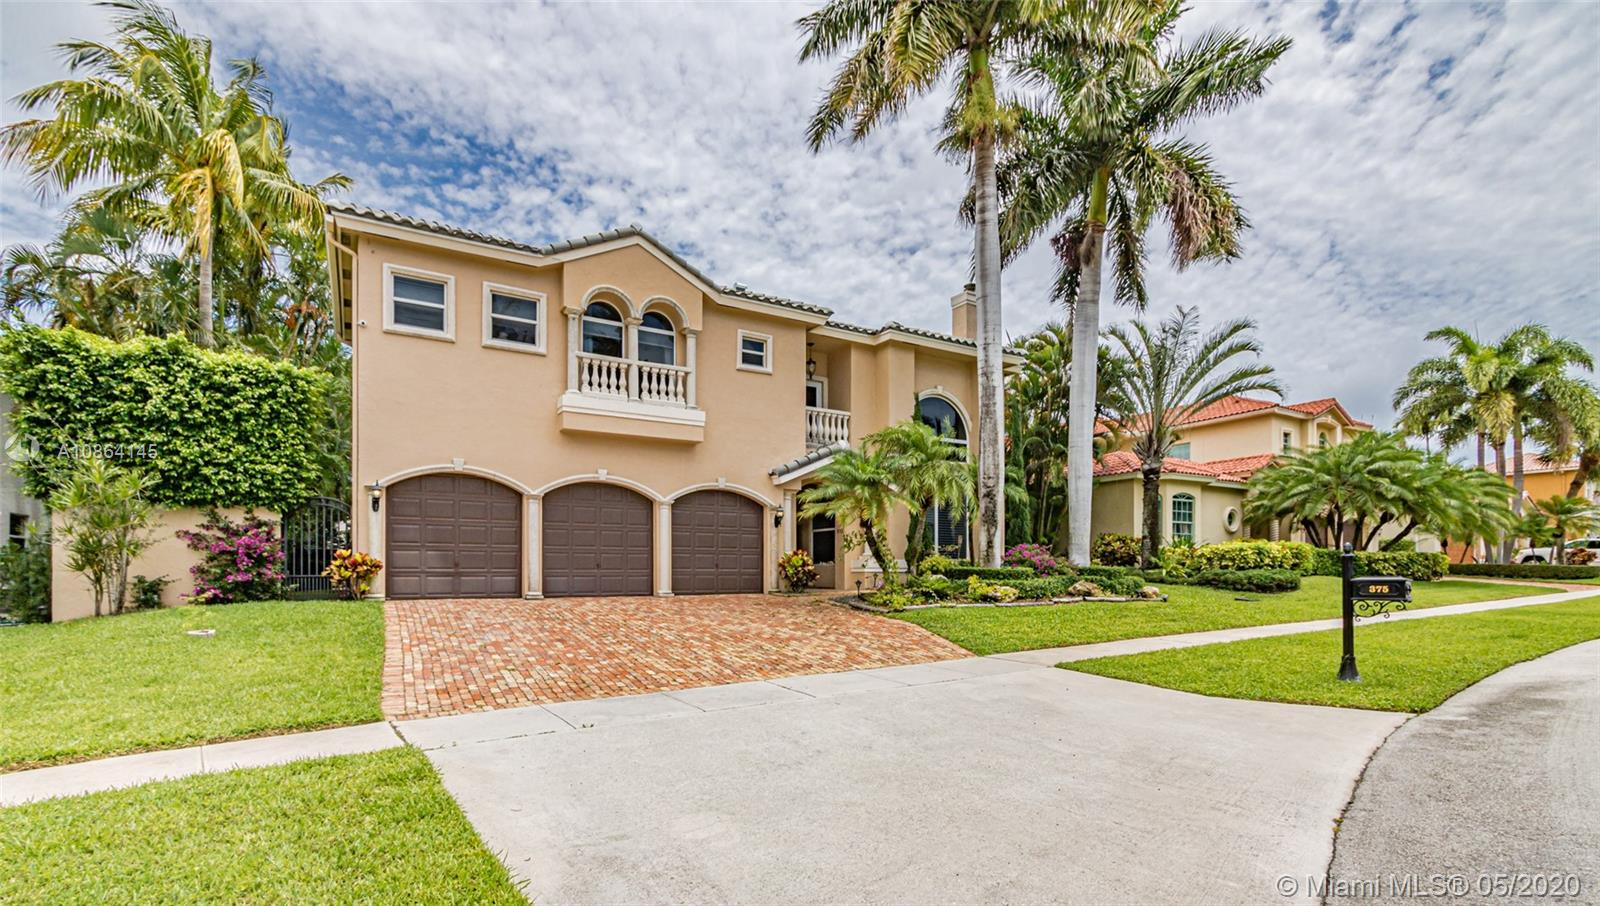 image #1 of property, Royal Palm Forest